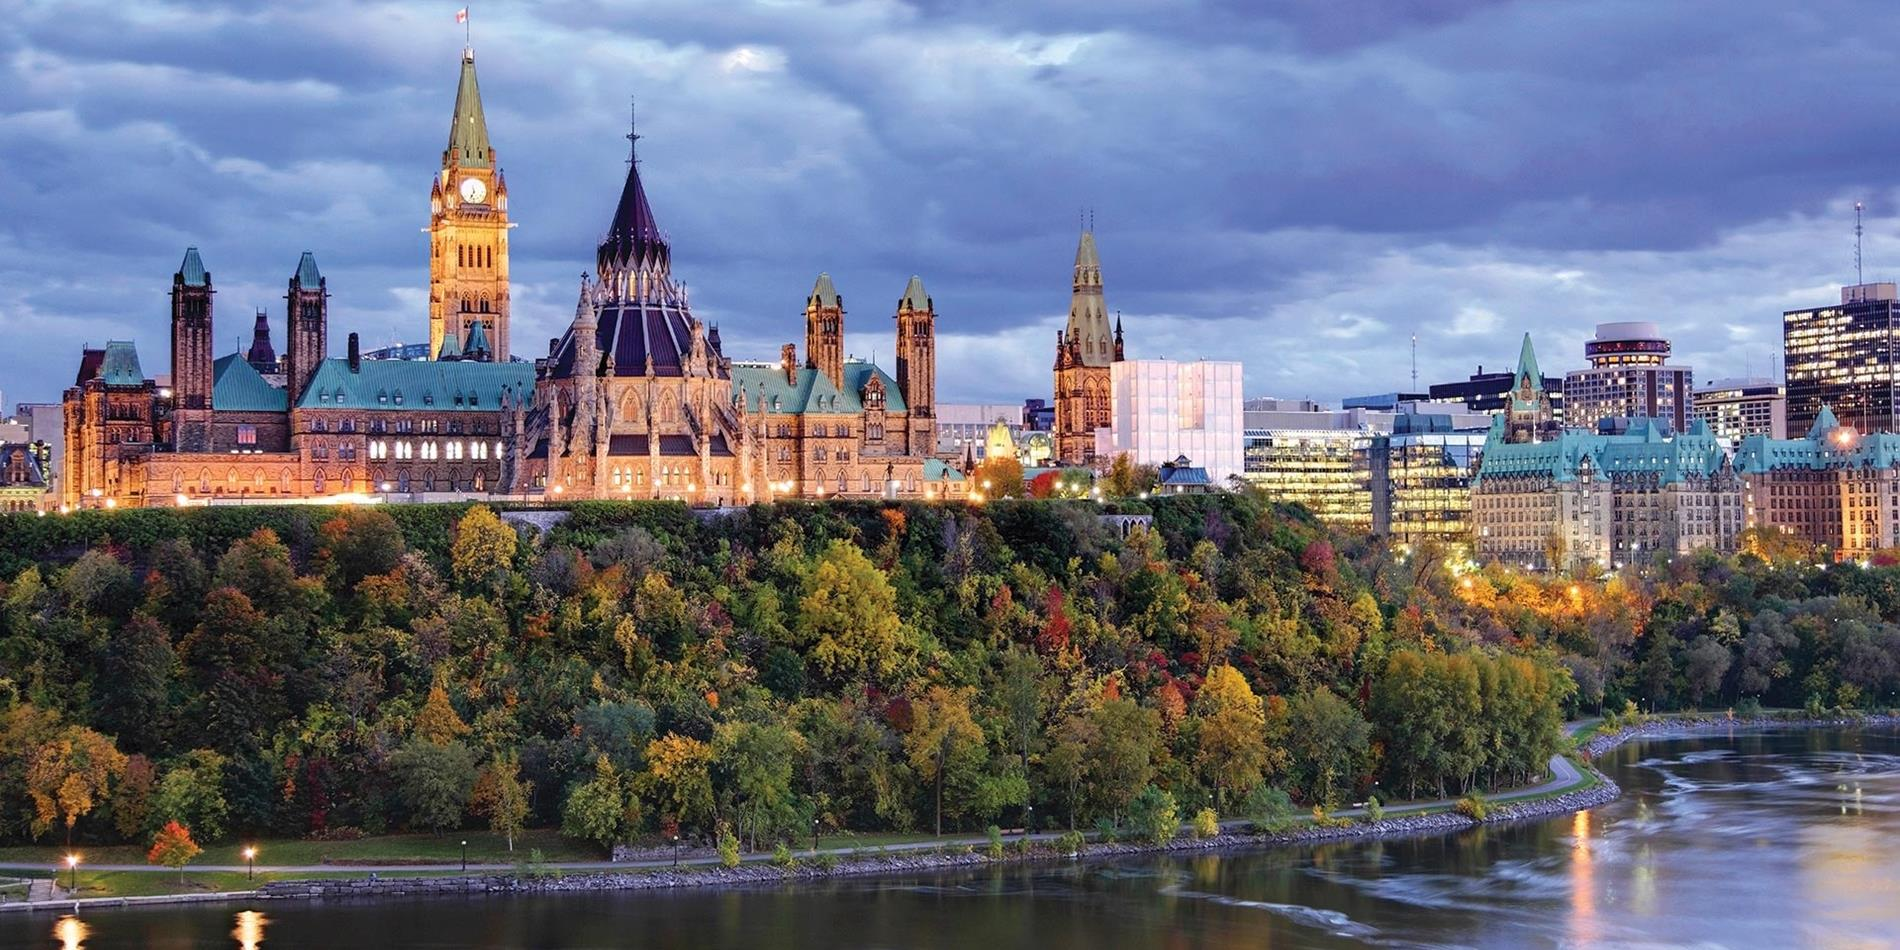 hc-a-causa-canada-ottawa-city-view-from-river-14568548-i-12-5.jpg